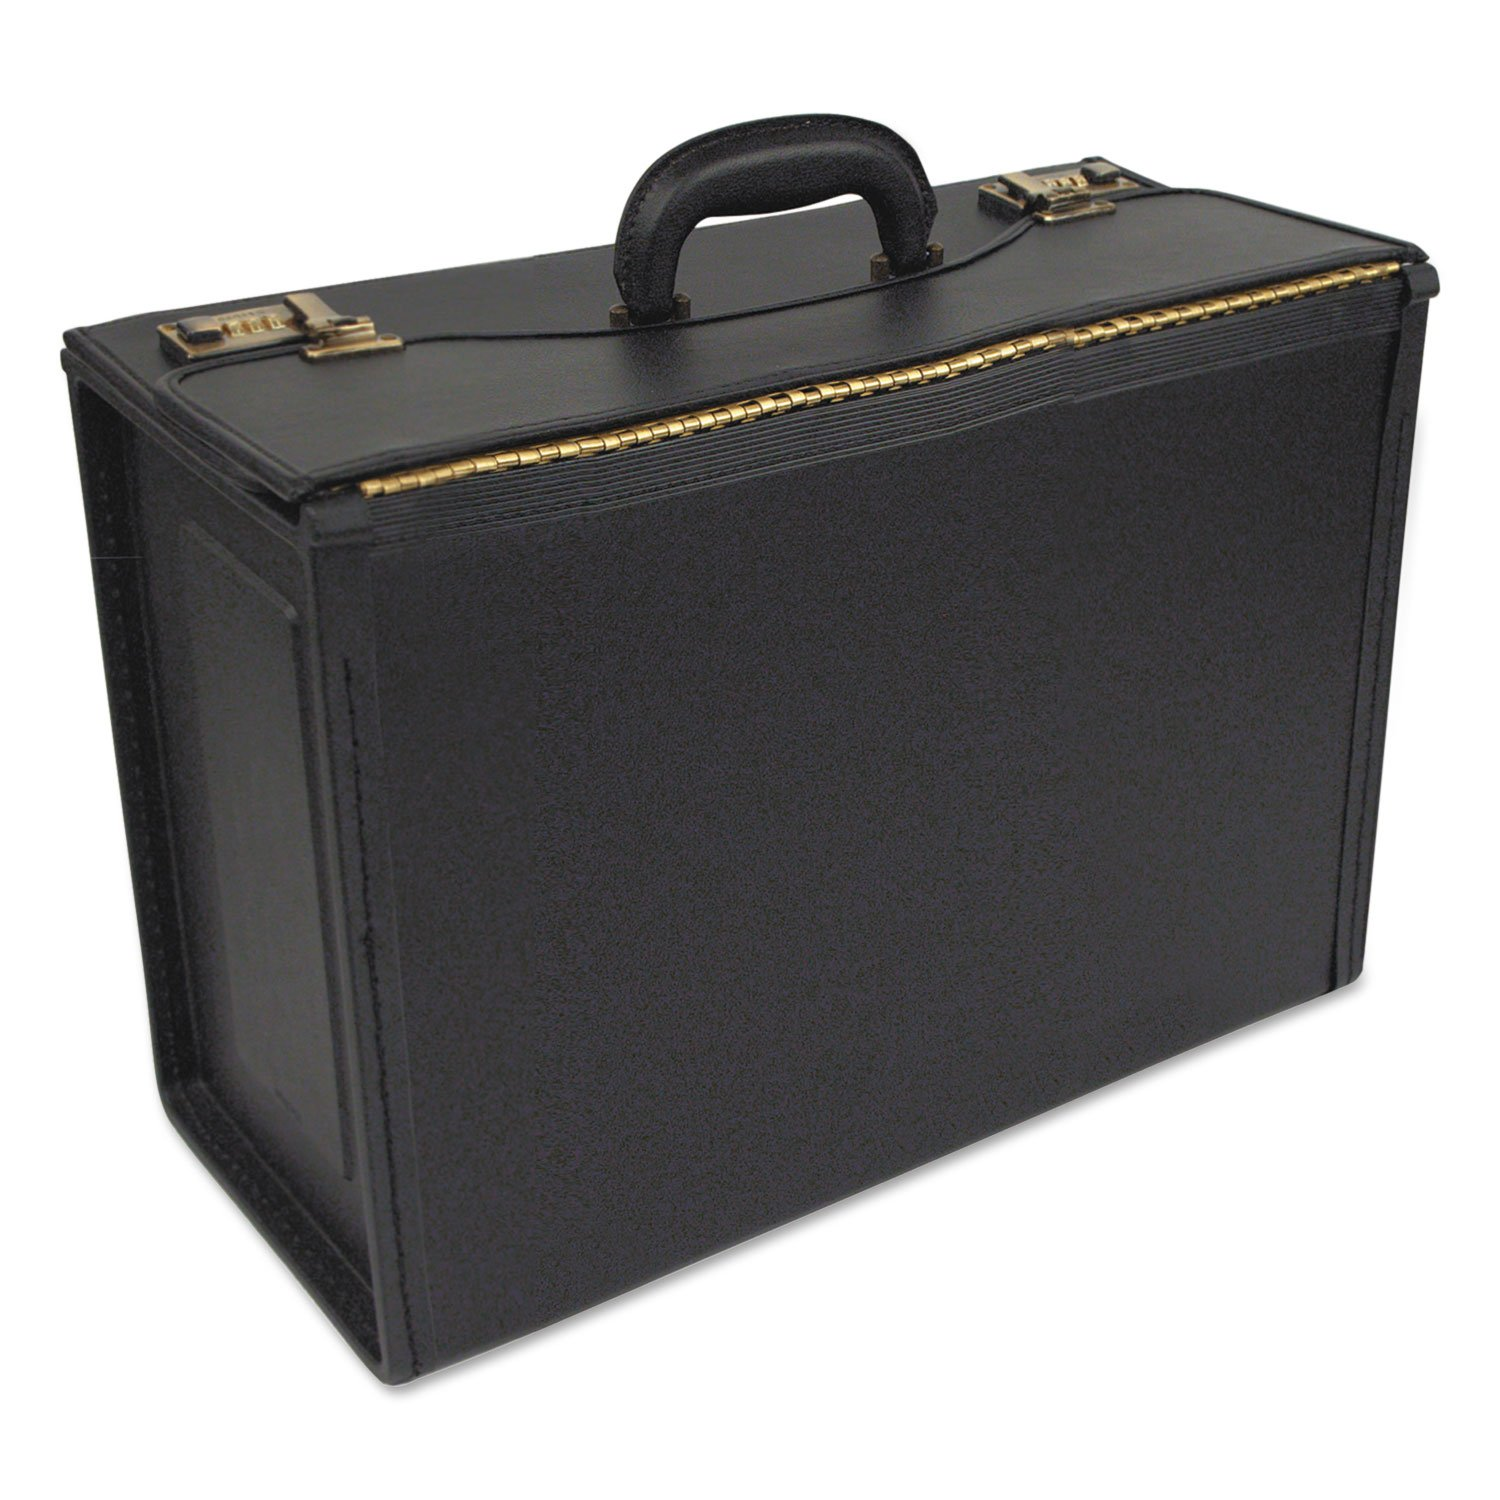 stb251322blk – Stebco Deluxe Carrying Case forドキュメント – ブラック B00MNY6LF4